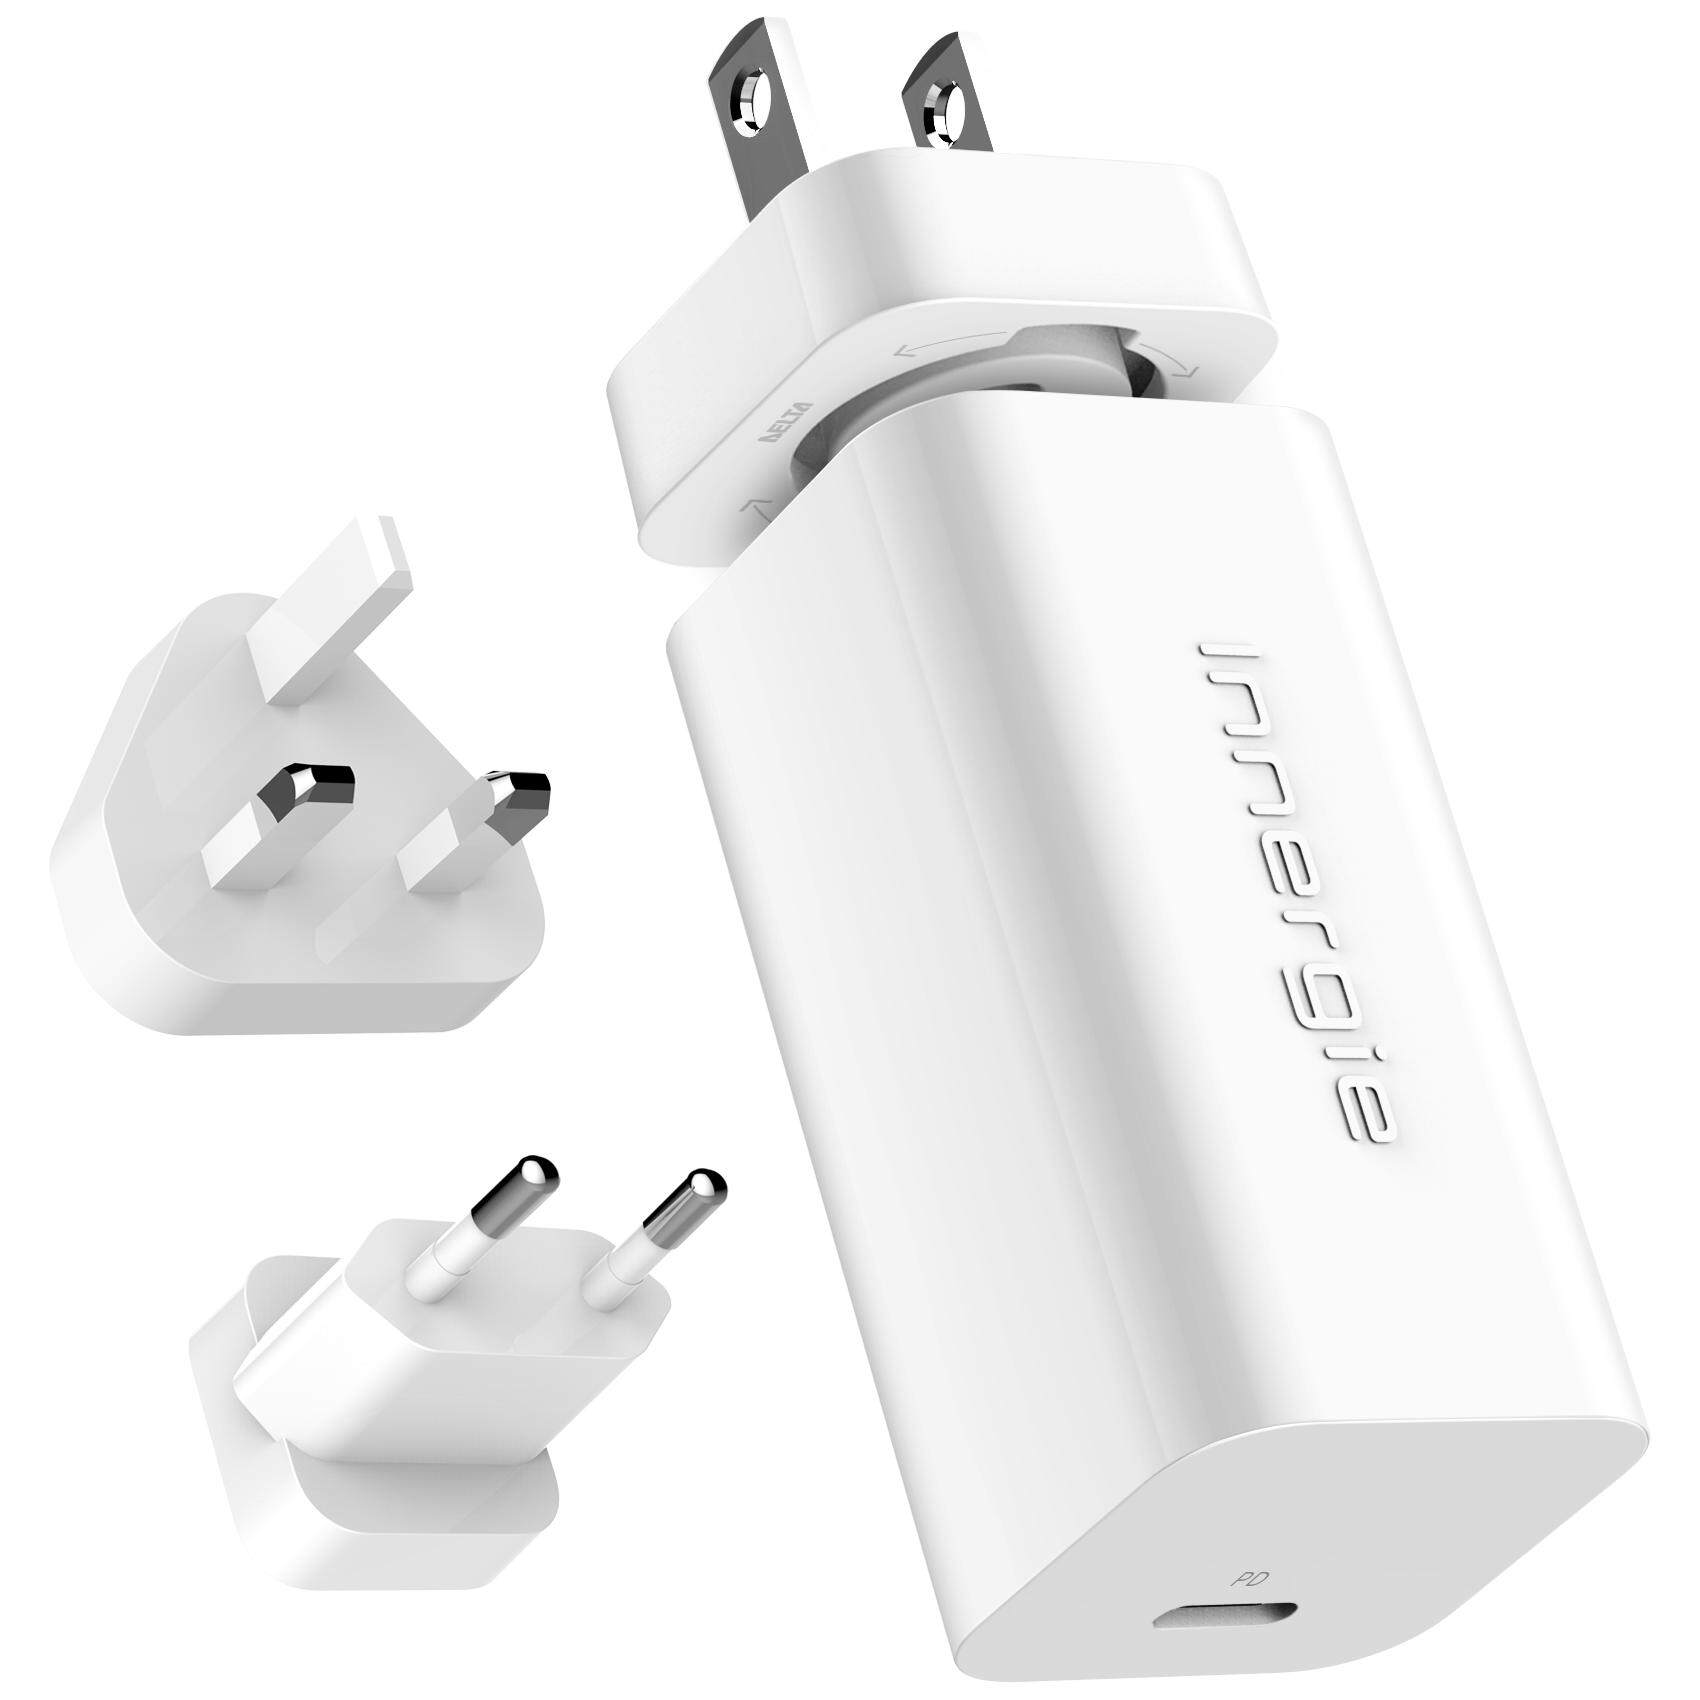 INNERGIE PowerGear 60C USB-C Laptop Adapter 60W Ultra Compact Travel Plug